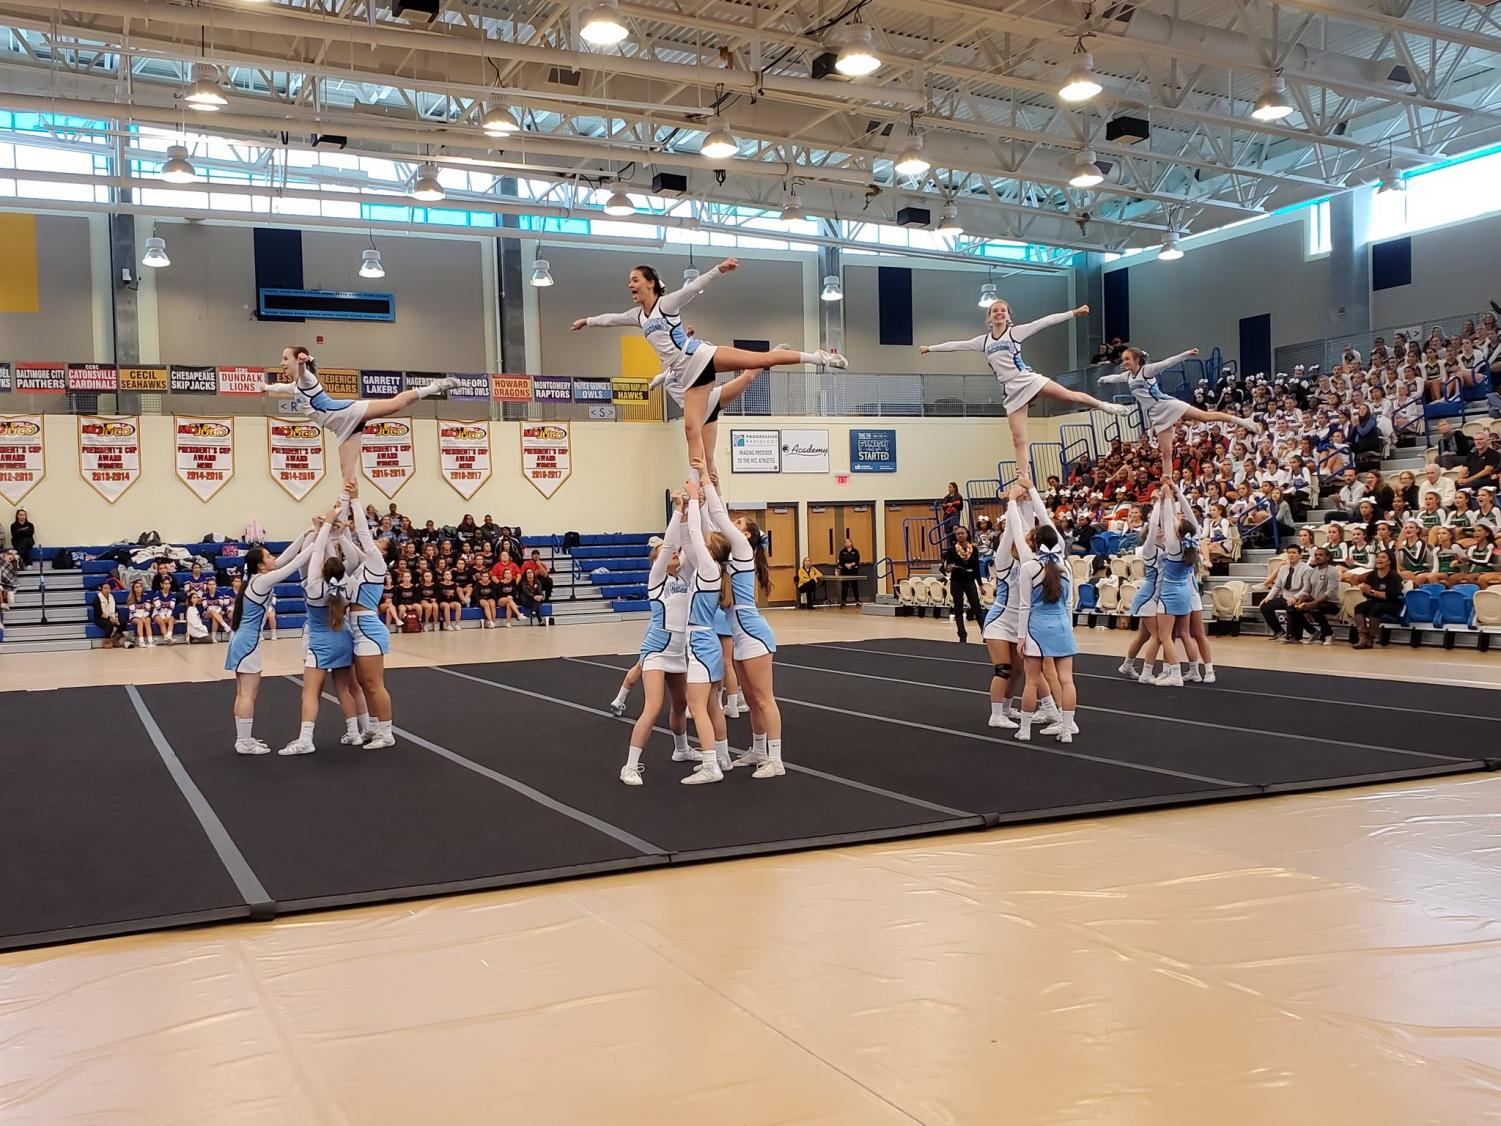 The cheer team performs at the state semifinals on Saturday. The team scored 112.1 points without a single point deducted, and placed 11th out of 26 teams. Photo courtesy the Whitman Cheer Twitter.